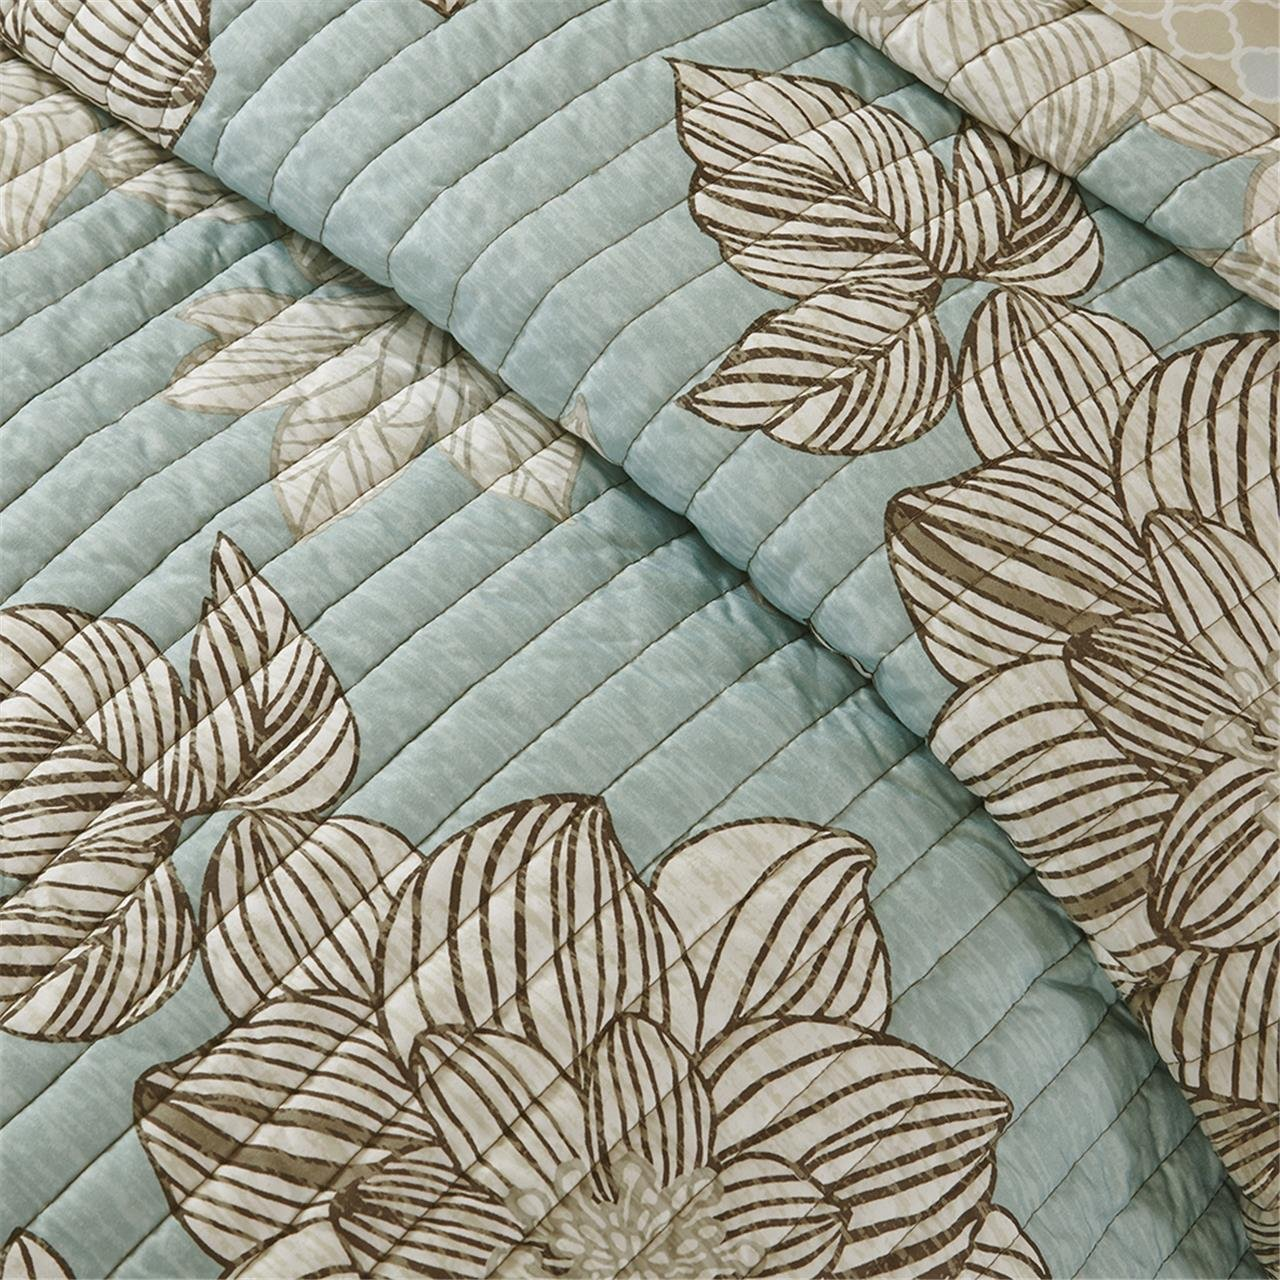 Madison Park Essentials Avalon Twin Size Quilt Bedding Set - Aqua, Khaki, Floral – 6 Piece Bedding Quilt Coverlets – Ultra Soft Microfiber Bed Quilts Quilted Coverlet